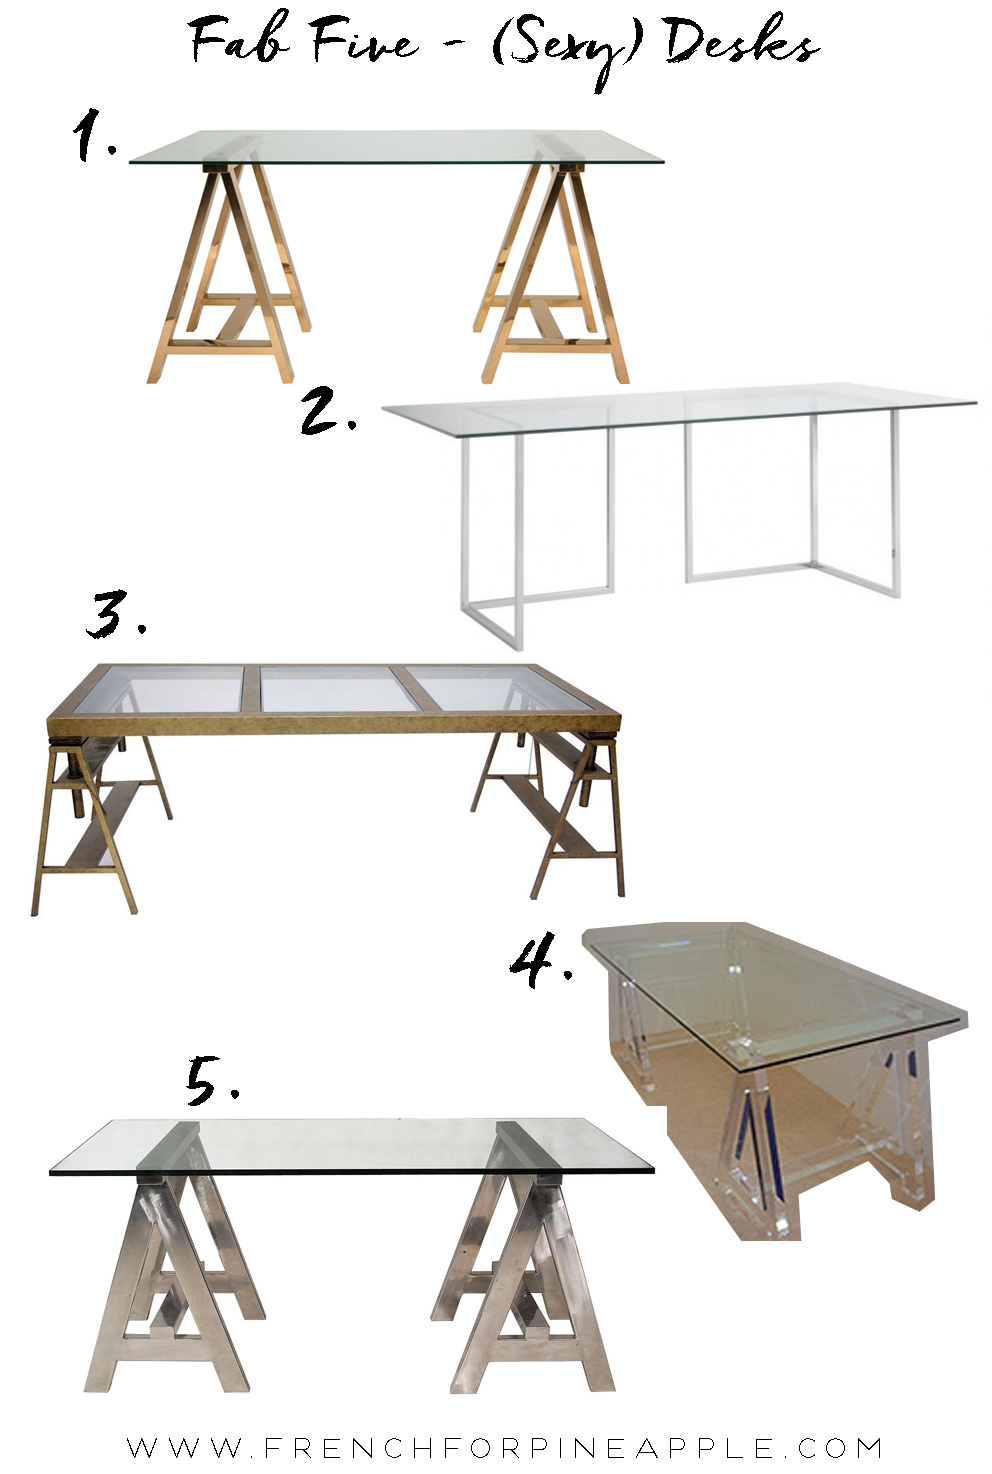 Fab Five Sexy Desks - French For Pineapple Blog